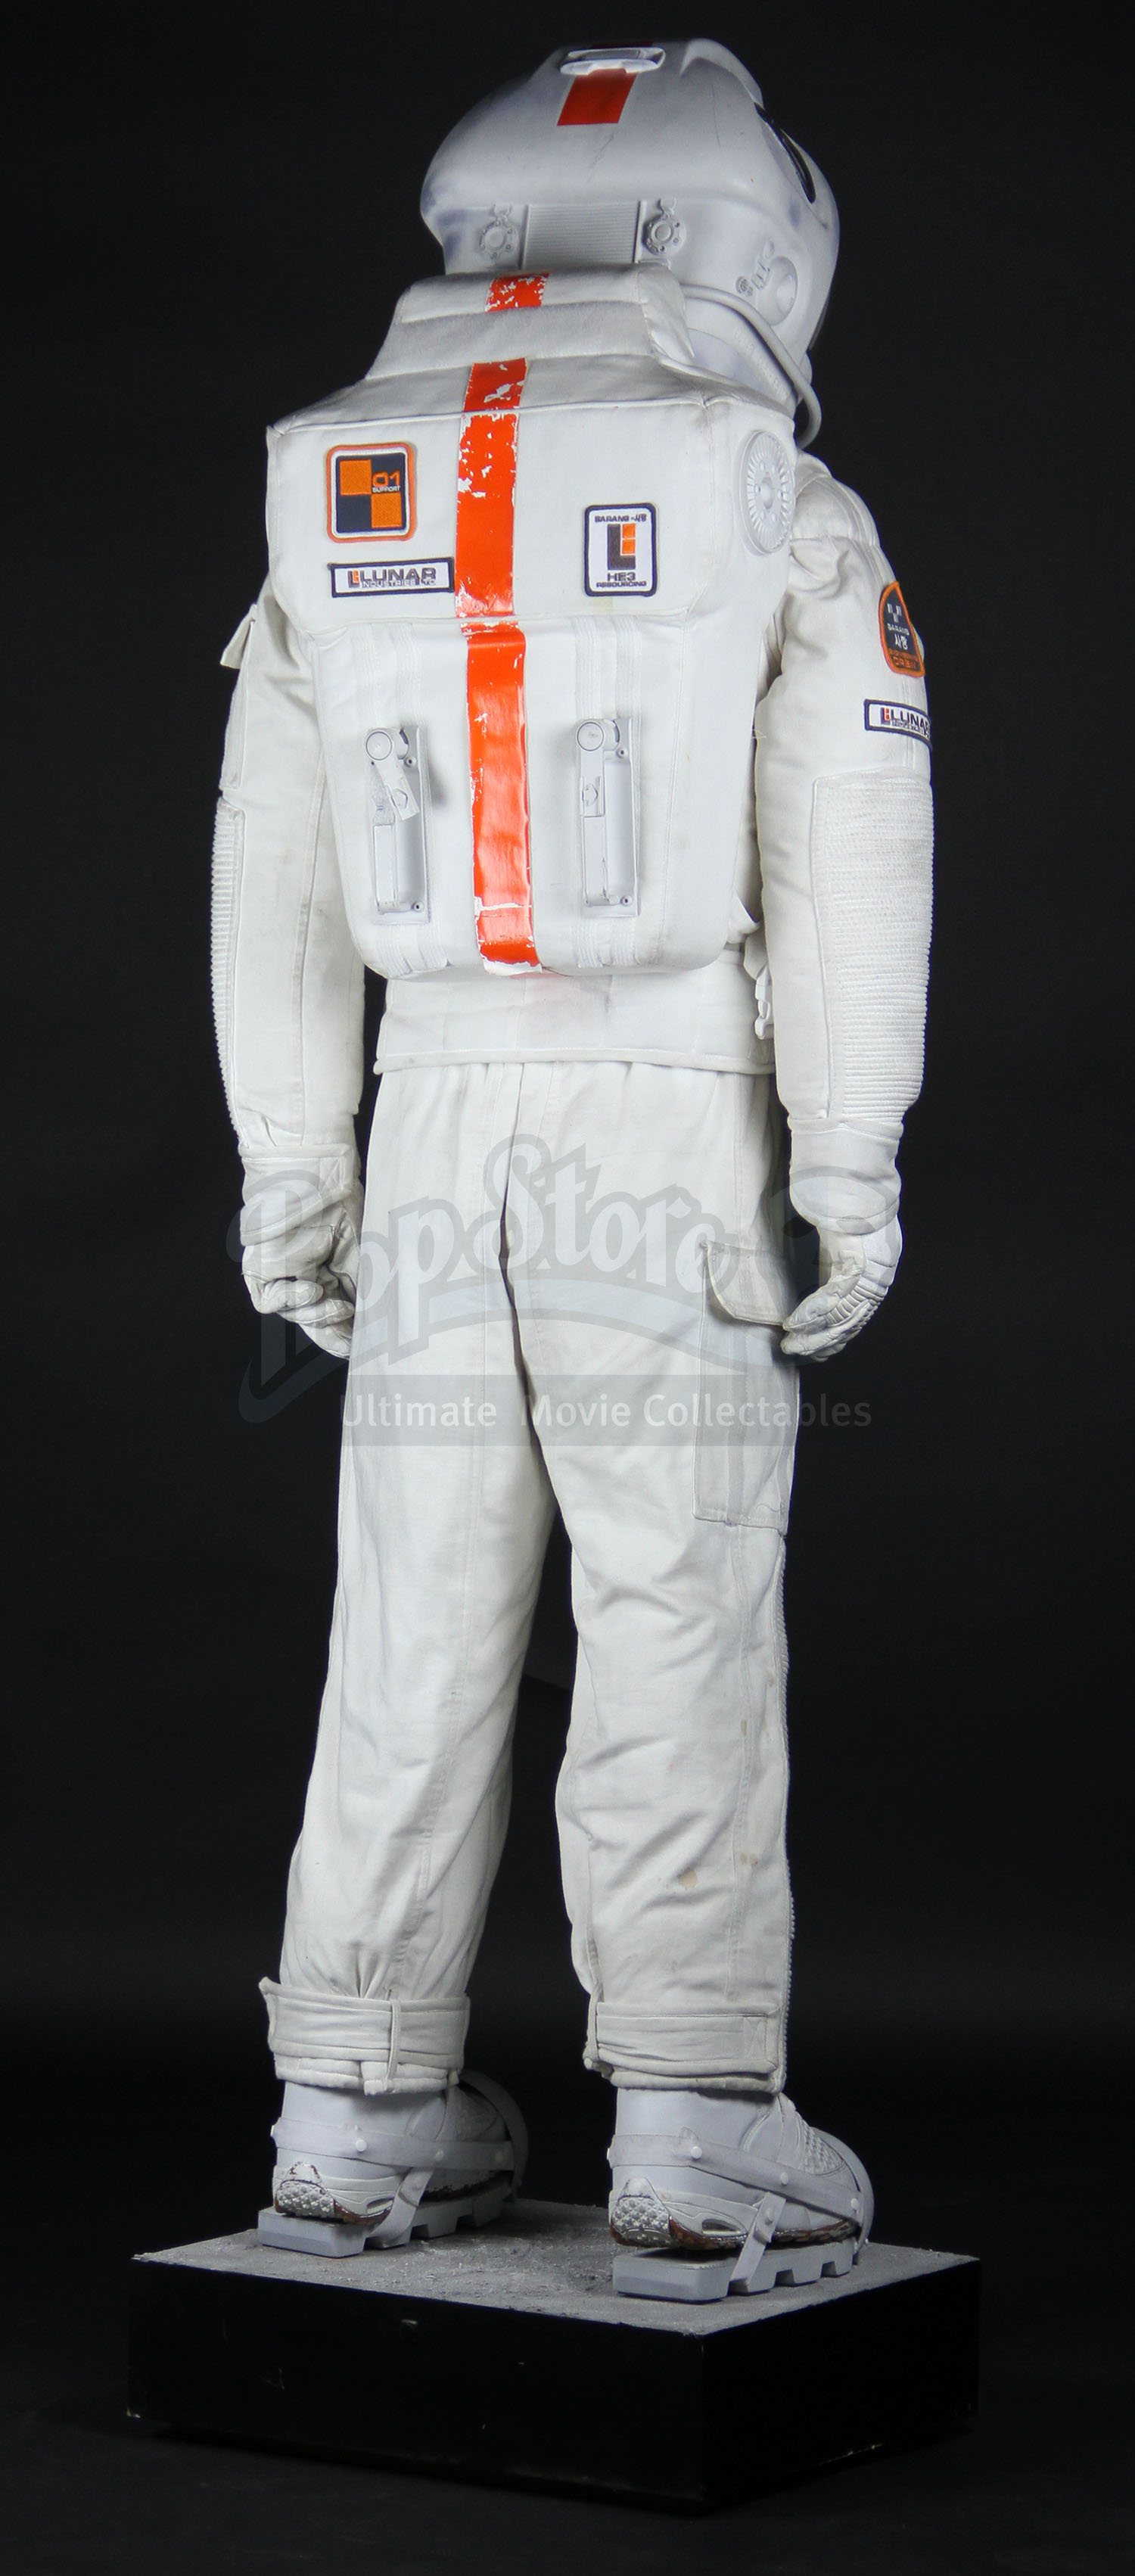 Sam Rockwell's Space Suit – Prop Store - Ultimate Movie ...